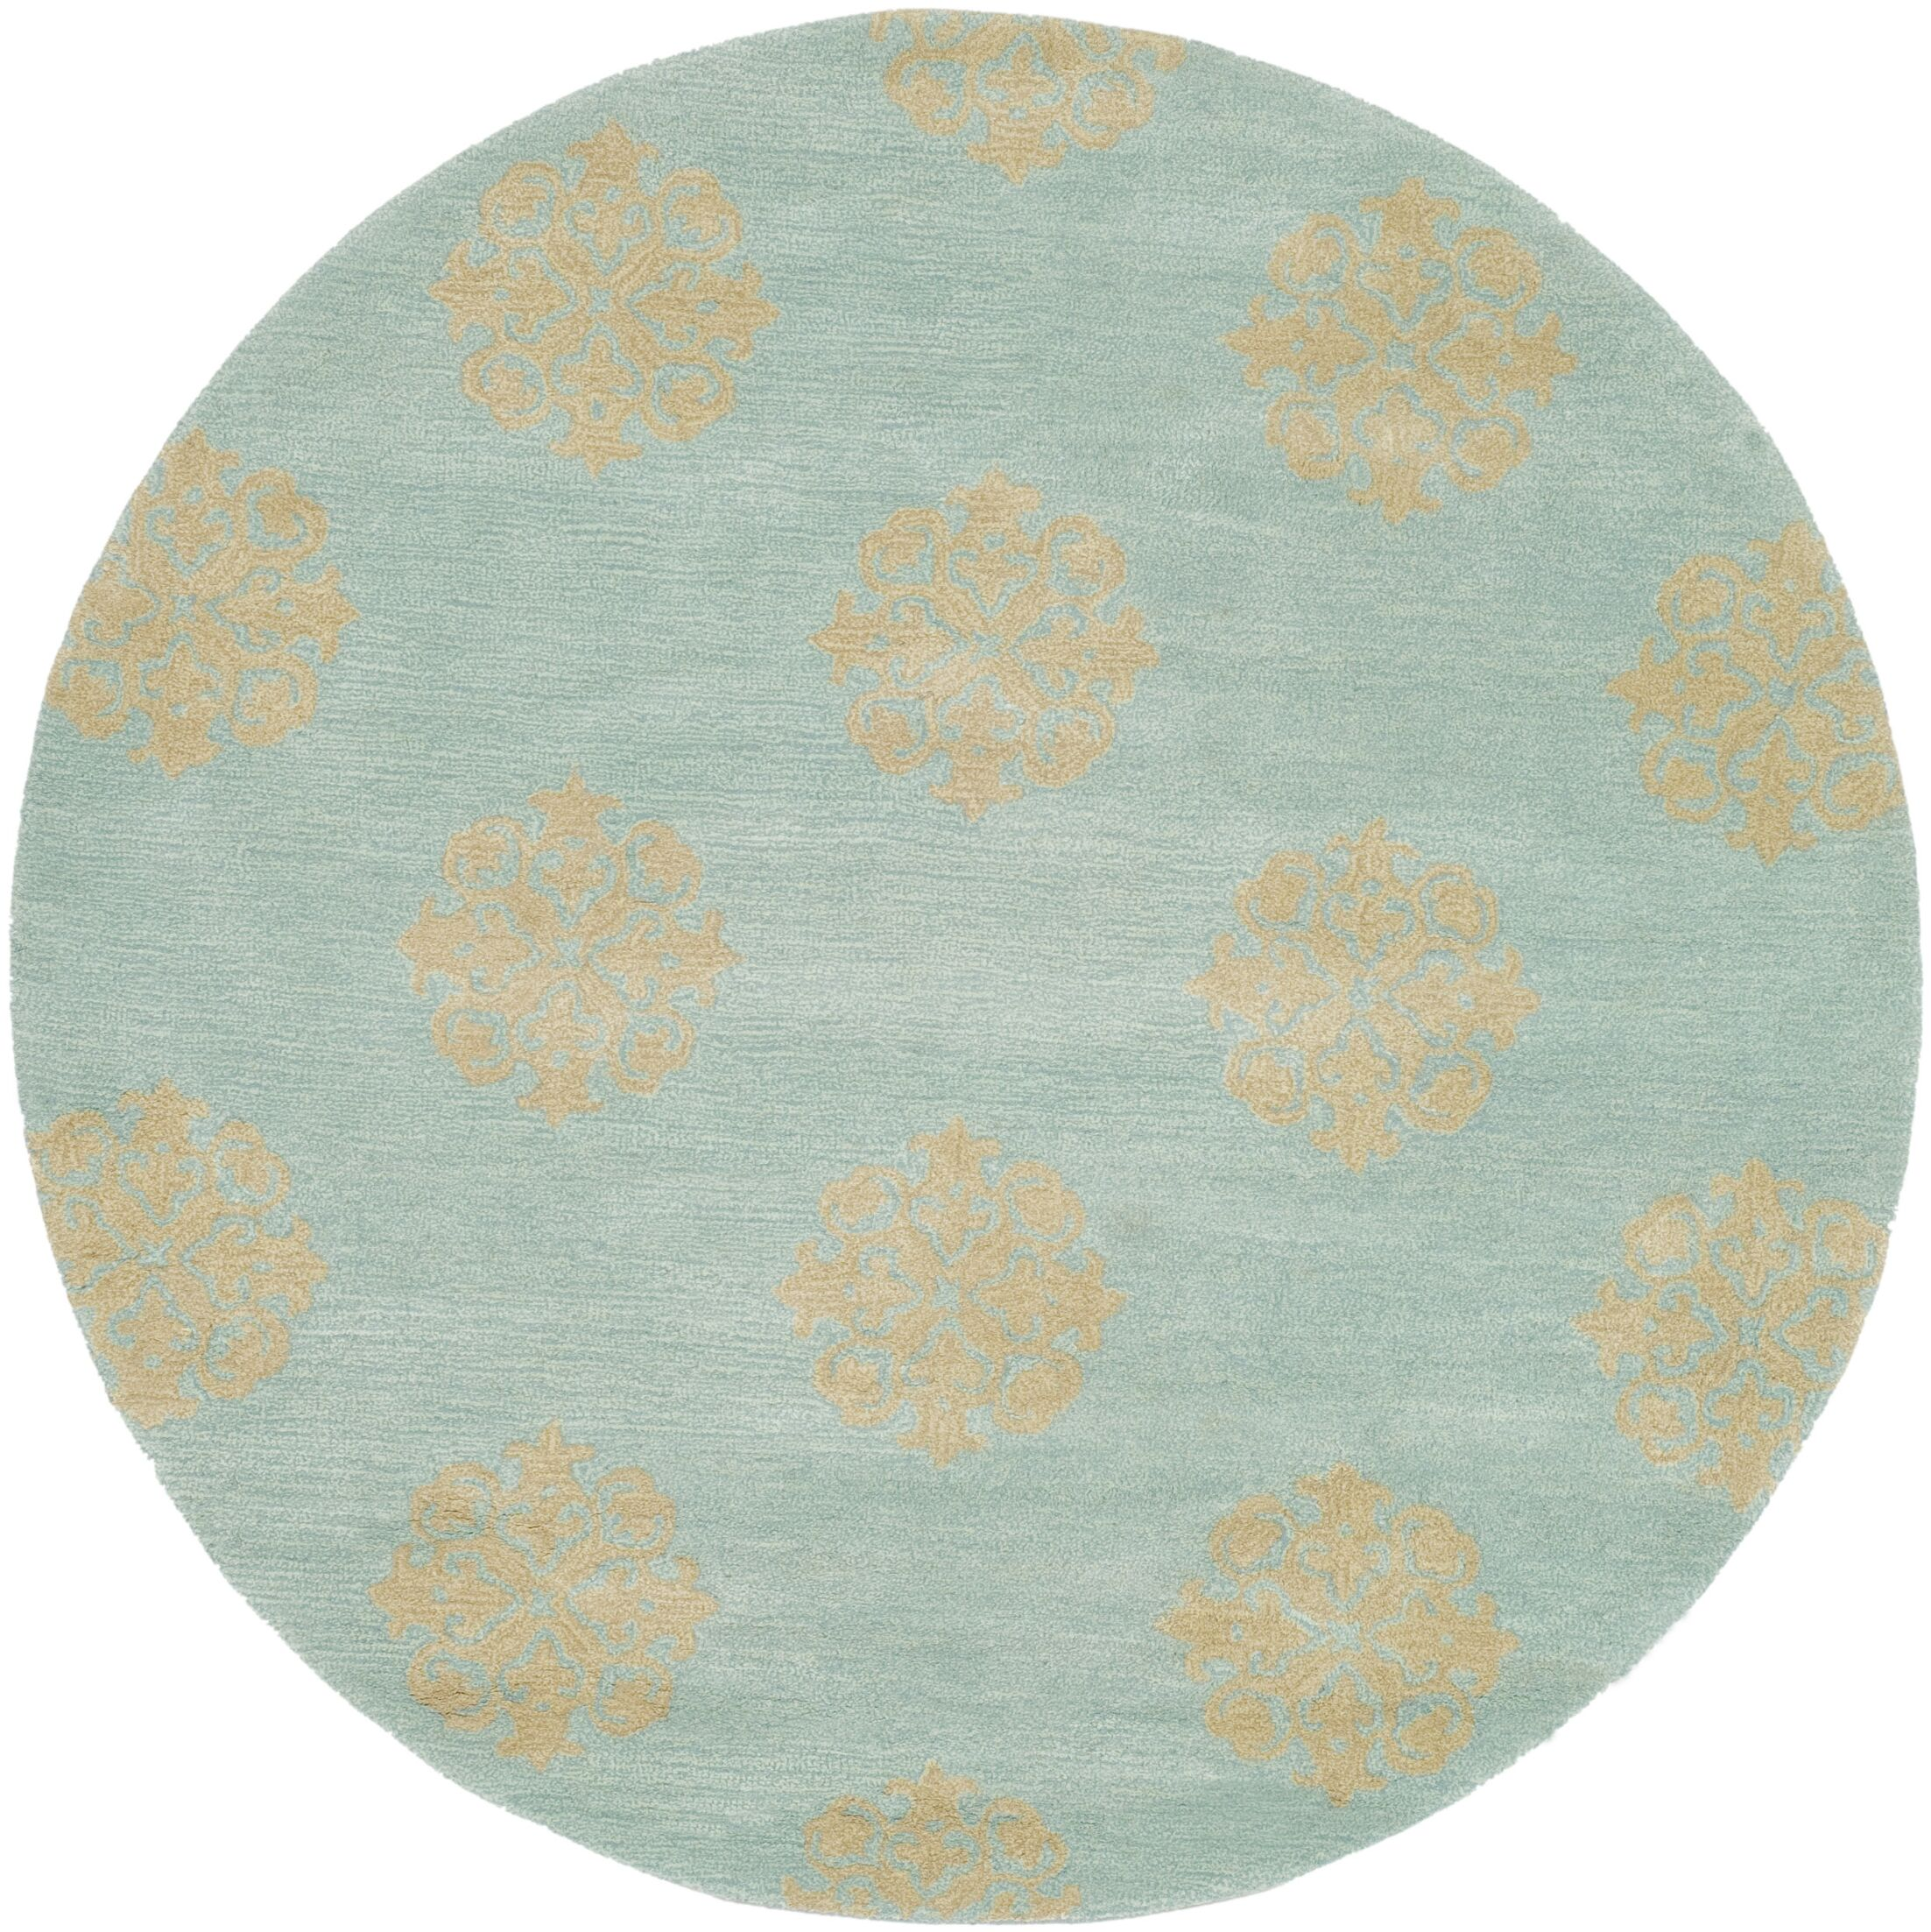 Backstrom Hand-Tufted Turquoise Area Rug Rug Size: Round 8'